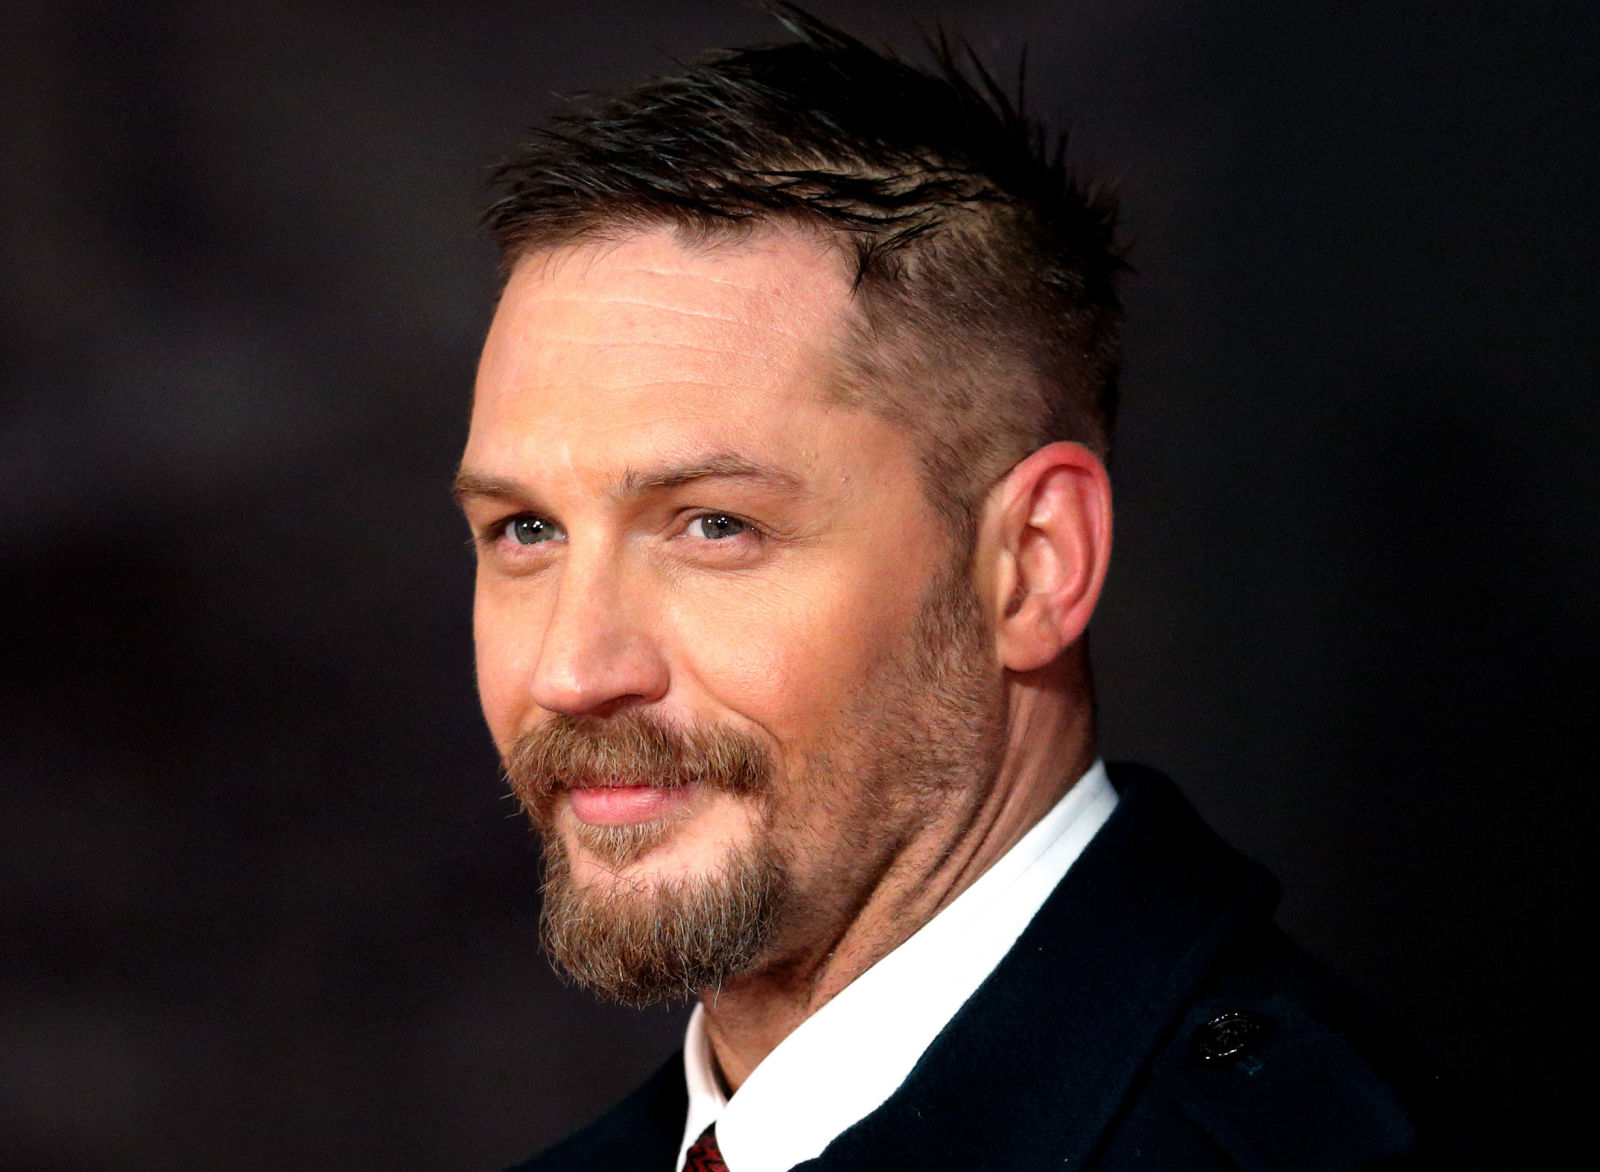 15 Top Risks Of Tom Hardy Hairstyle Tom Hardy Hairstyle